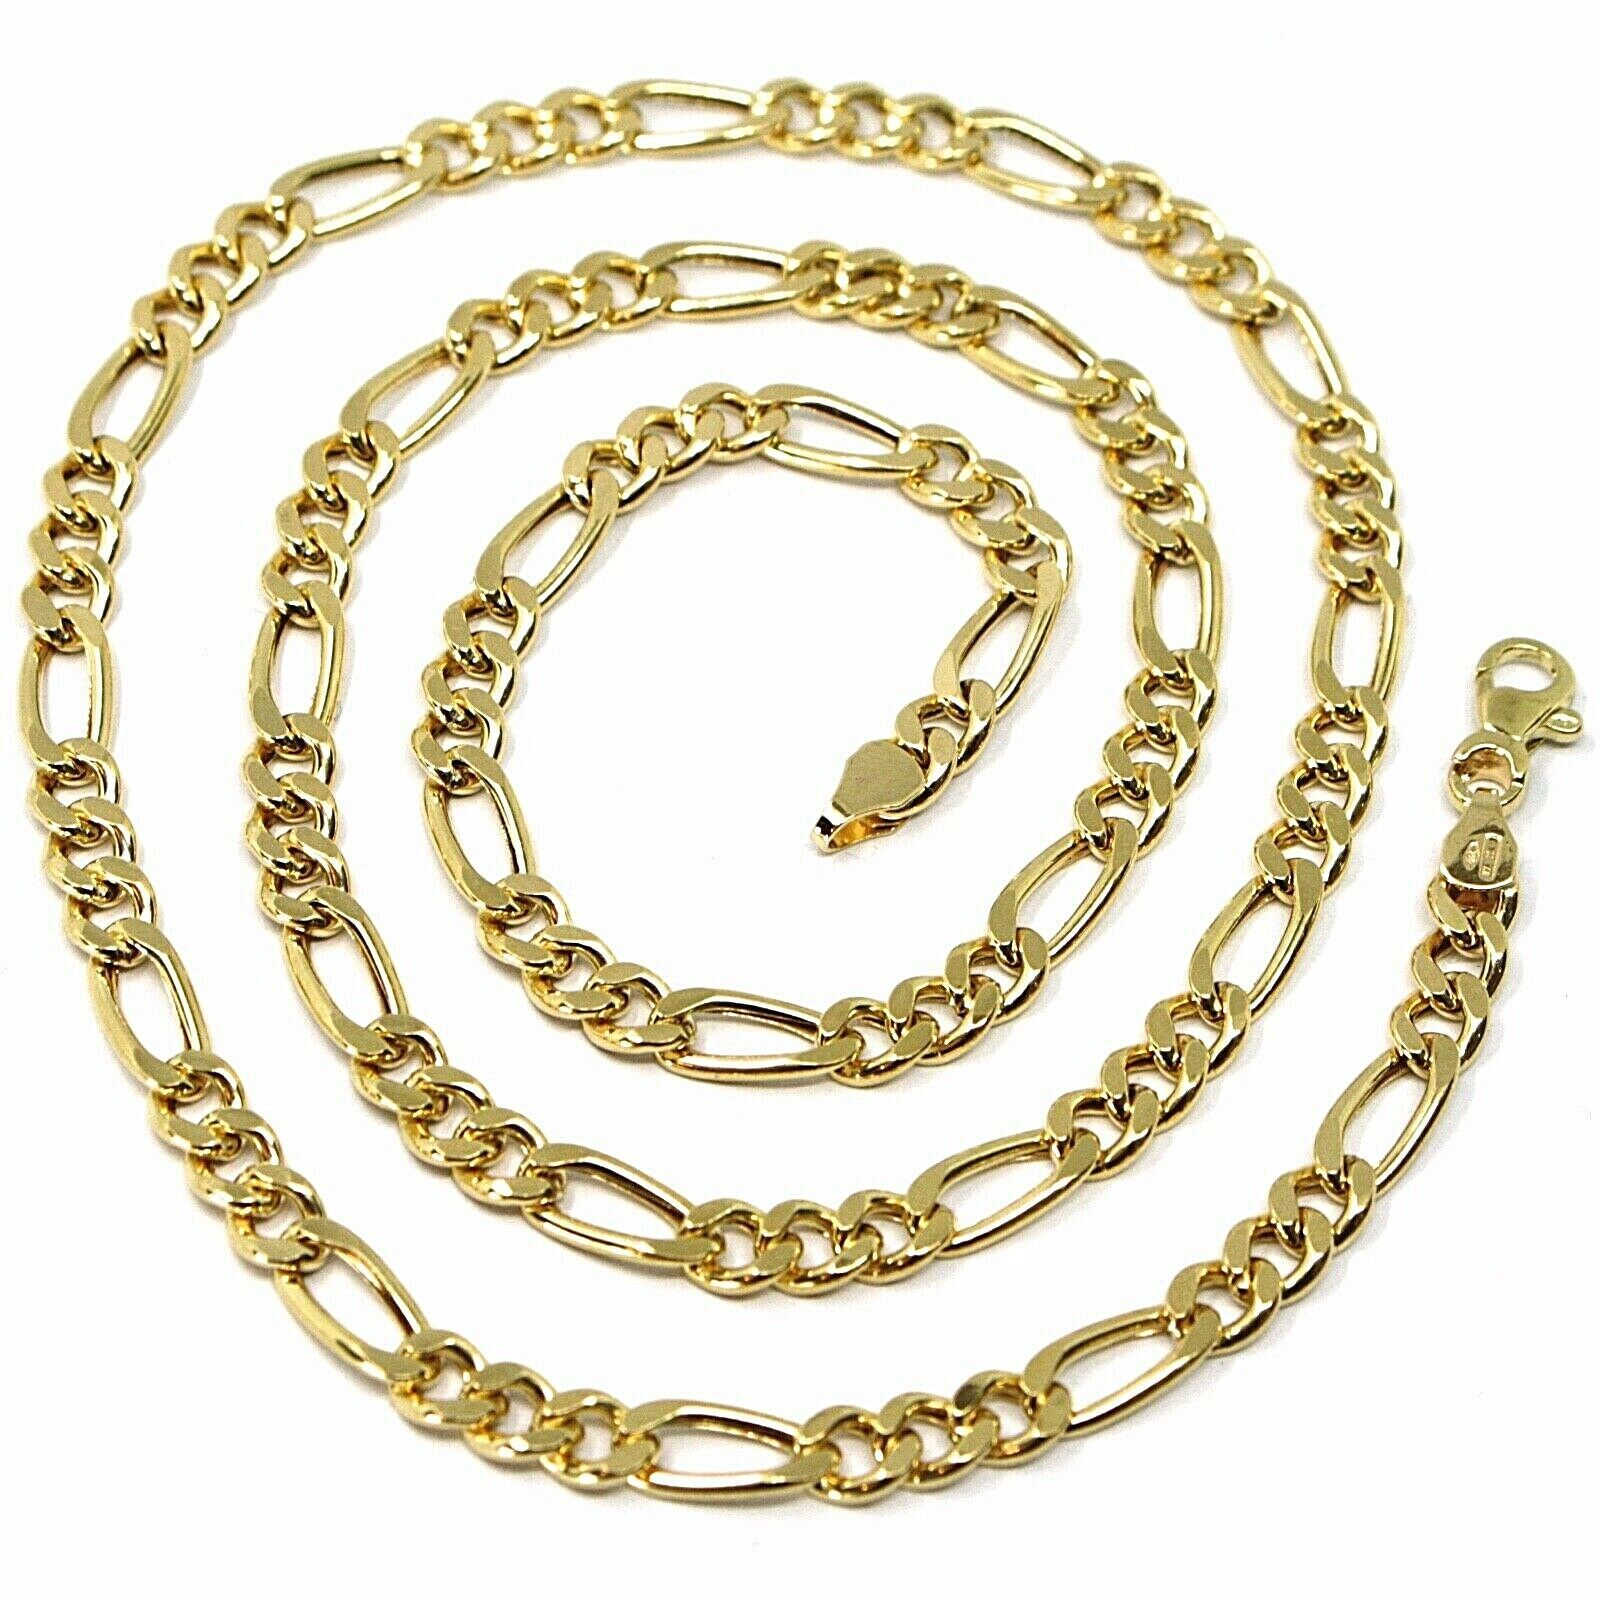 18K YELLOW GOLD CHAIN BIG 5 MM ROUNDED FIGARO GOURMETTE ALTERNATE 3+1, 24 INCHES